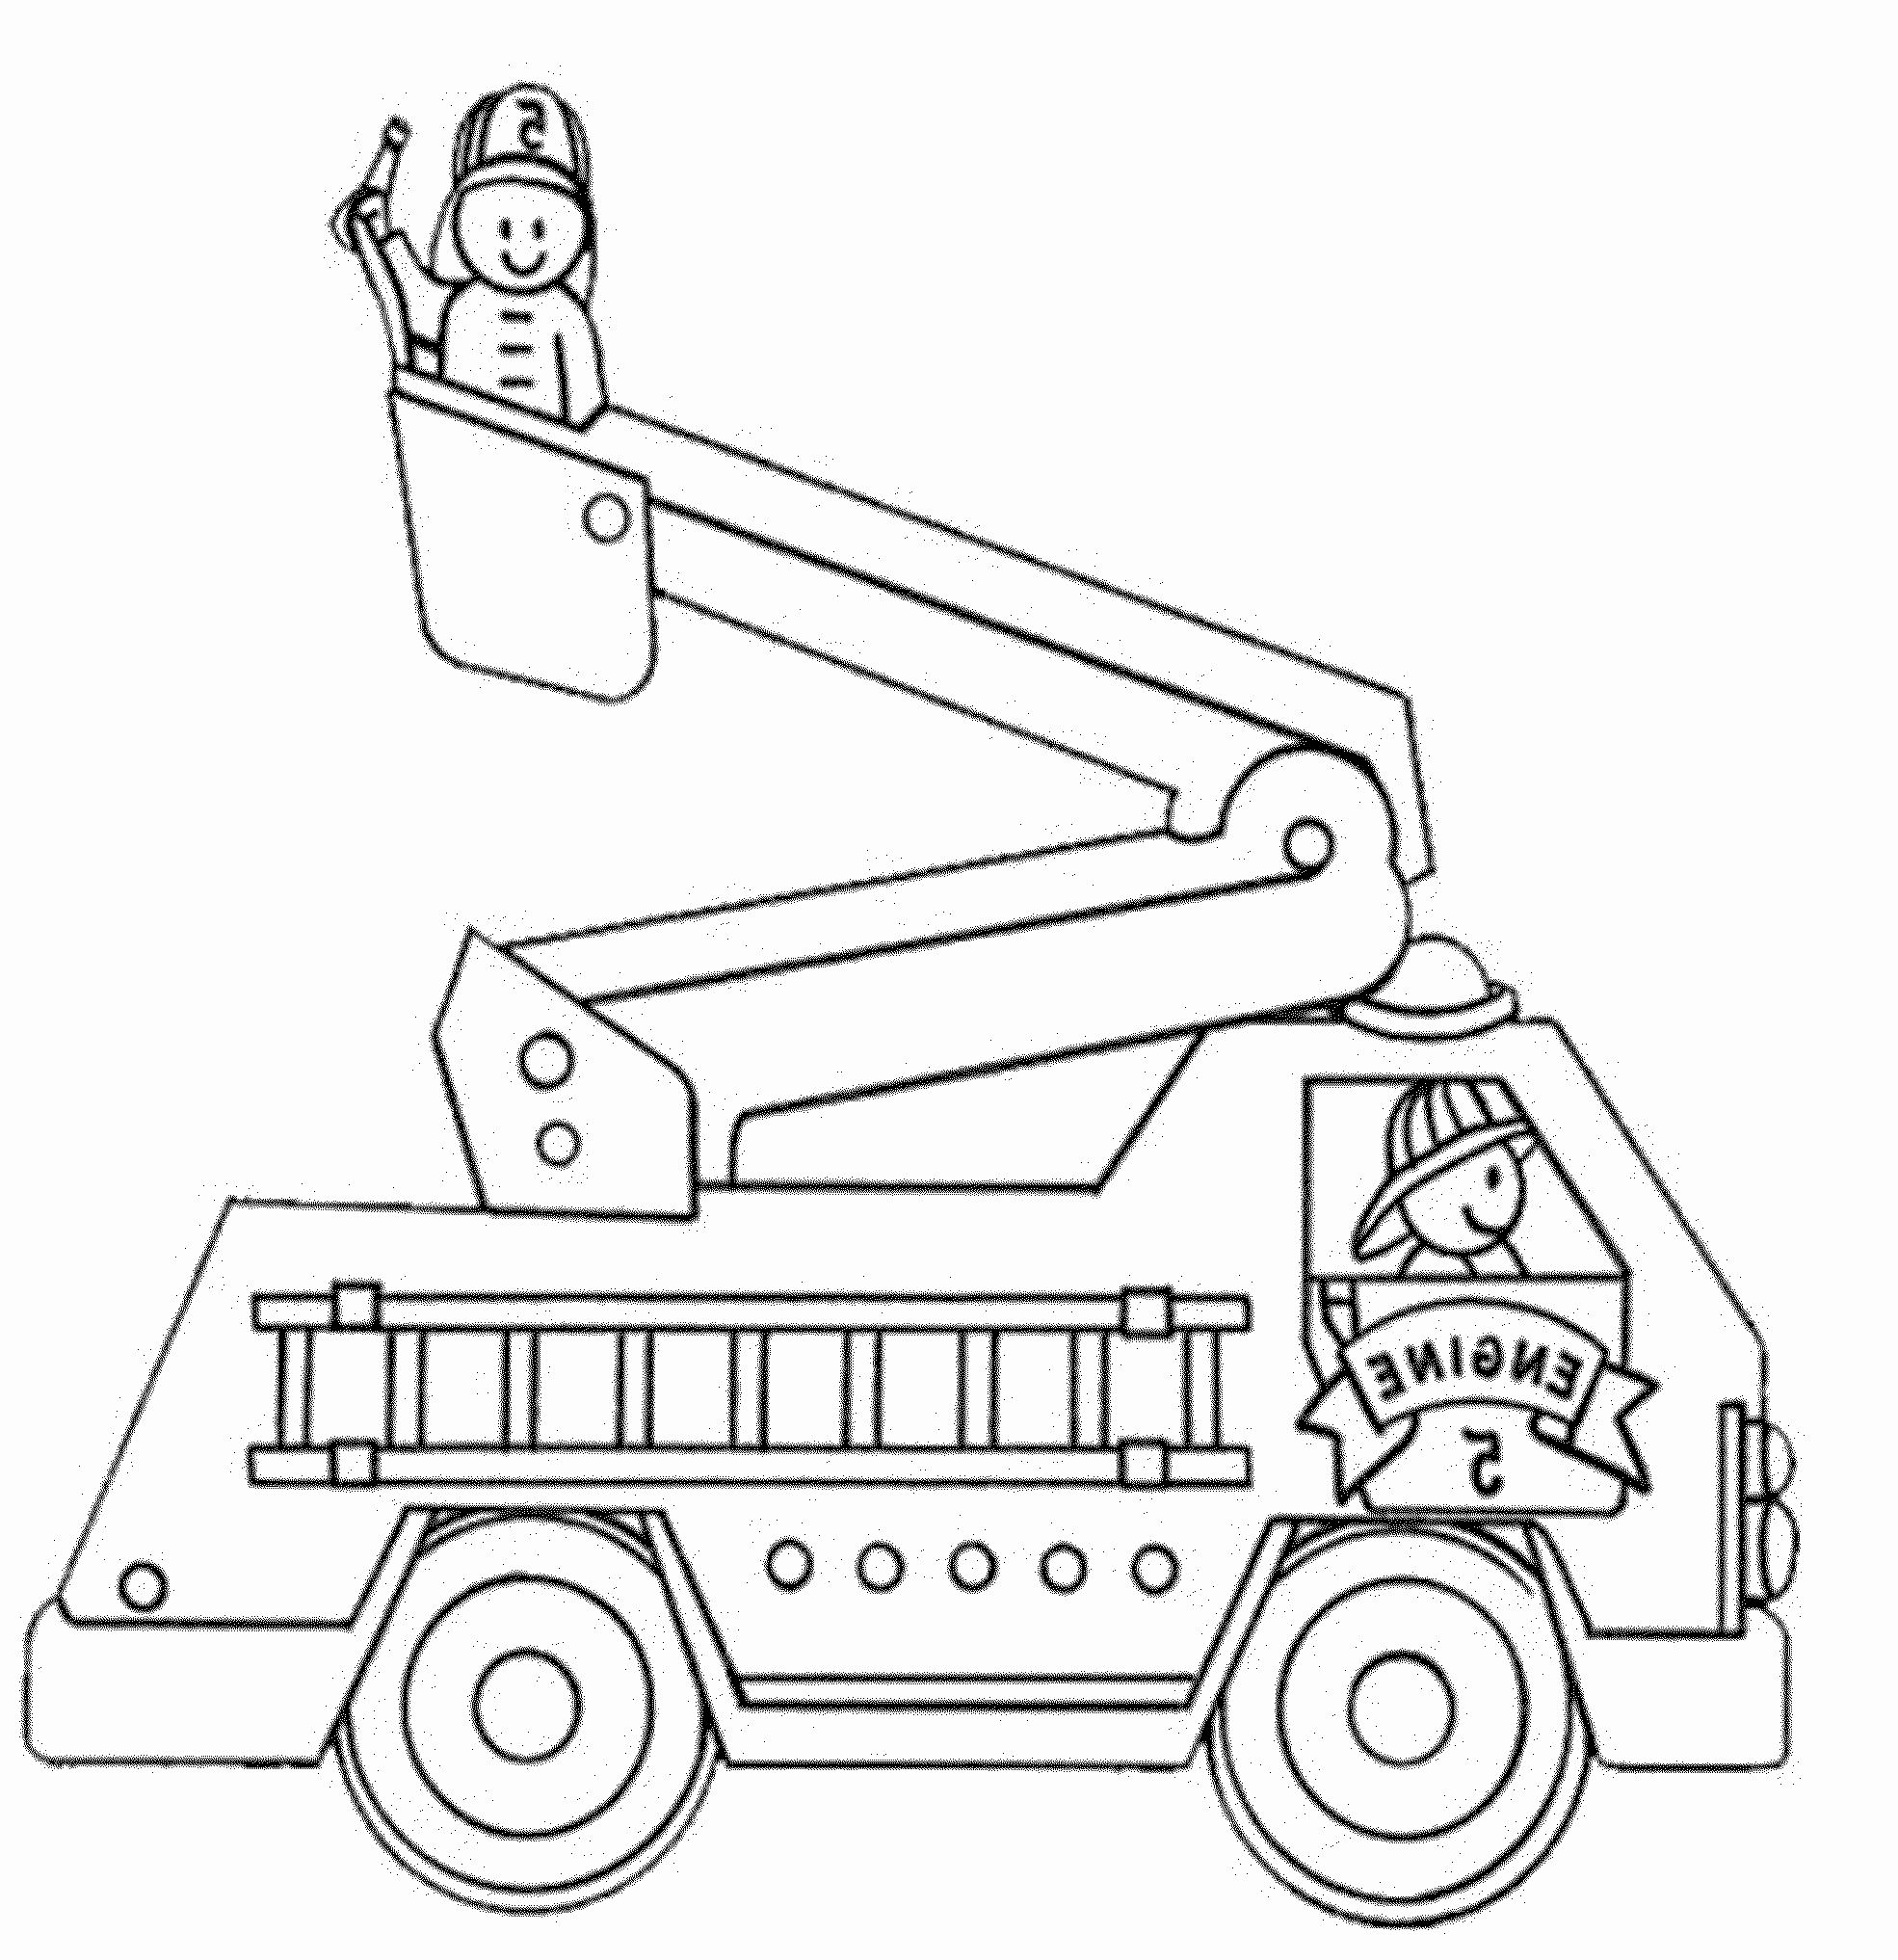 Coloring Page Fire Truck Beautiful Print Download Educational Fire Truck Coloring P Firetruck Coloring Page Truck Coloring Pages Monster Truck Coloring Pages